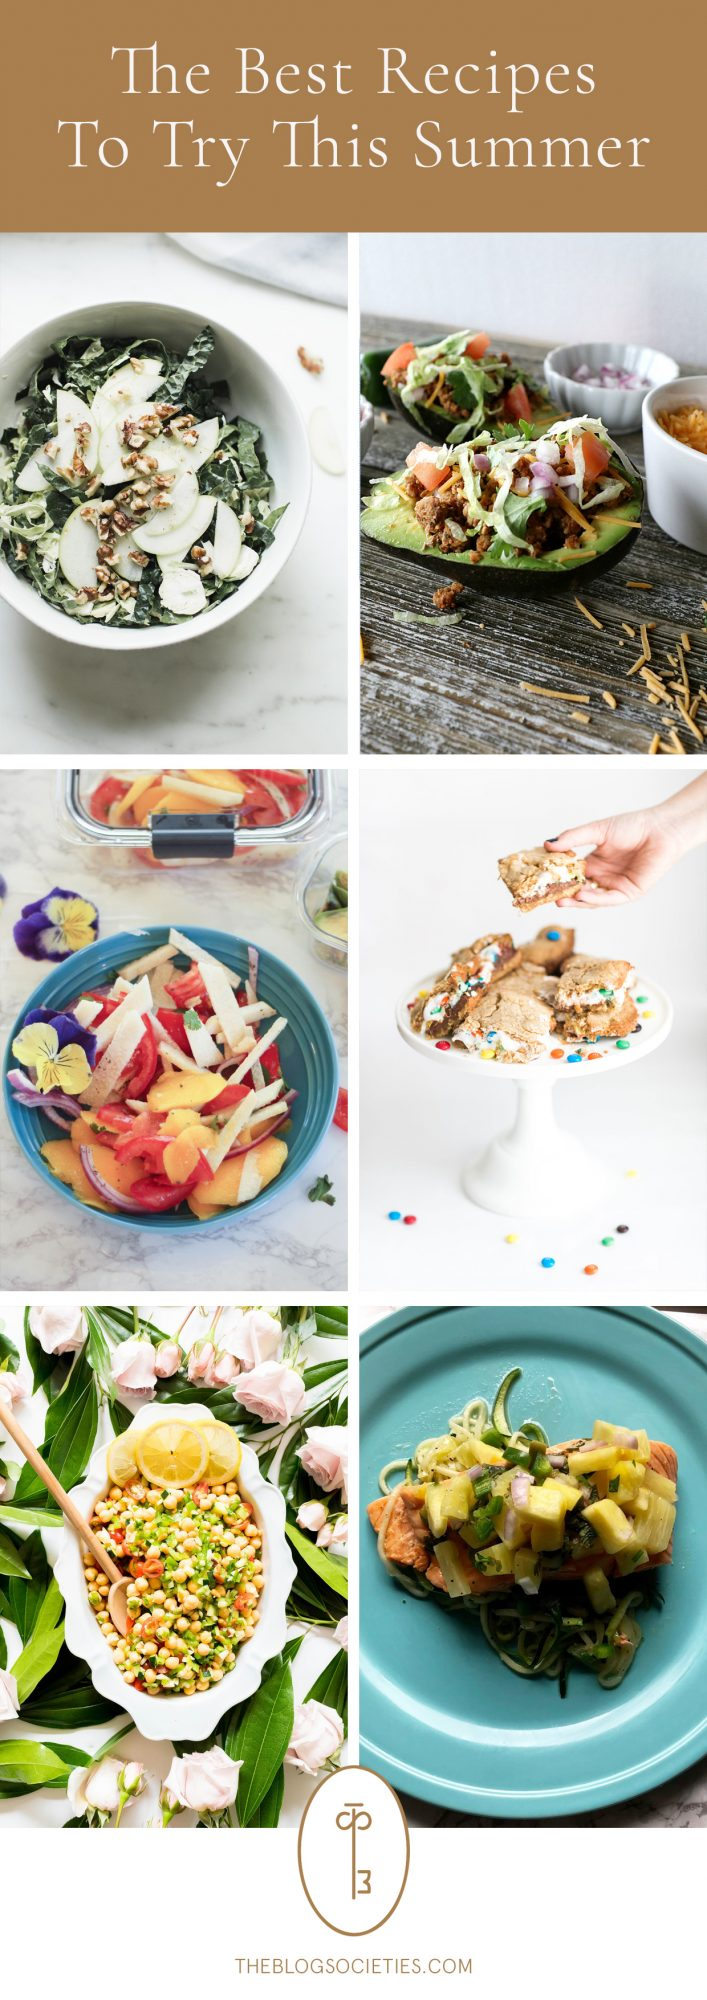 Delicious Summer Recipes To Try - The Blog Societies